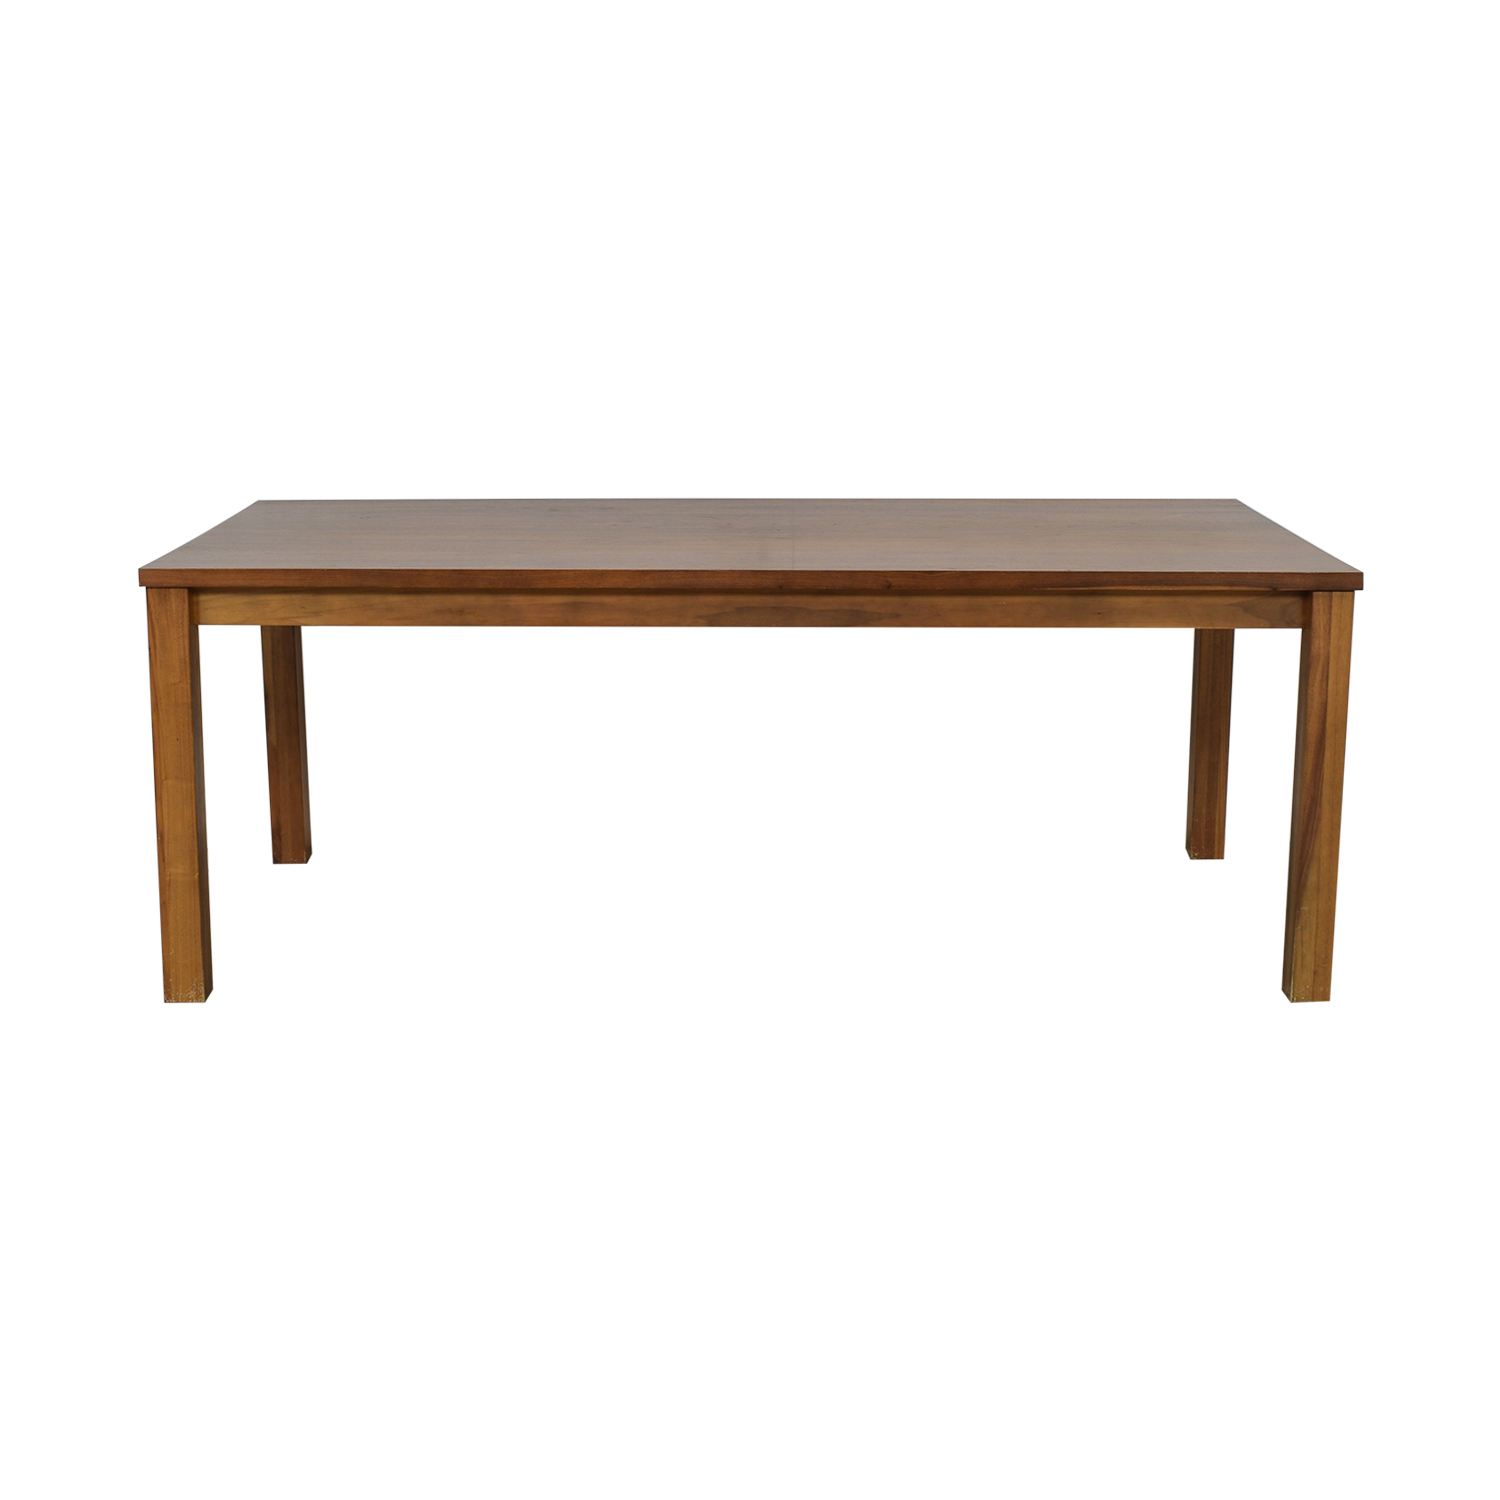 Room & Board Andover Dining Room Table / Dinner Tables